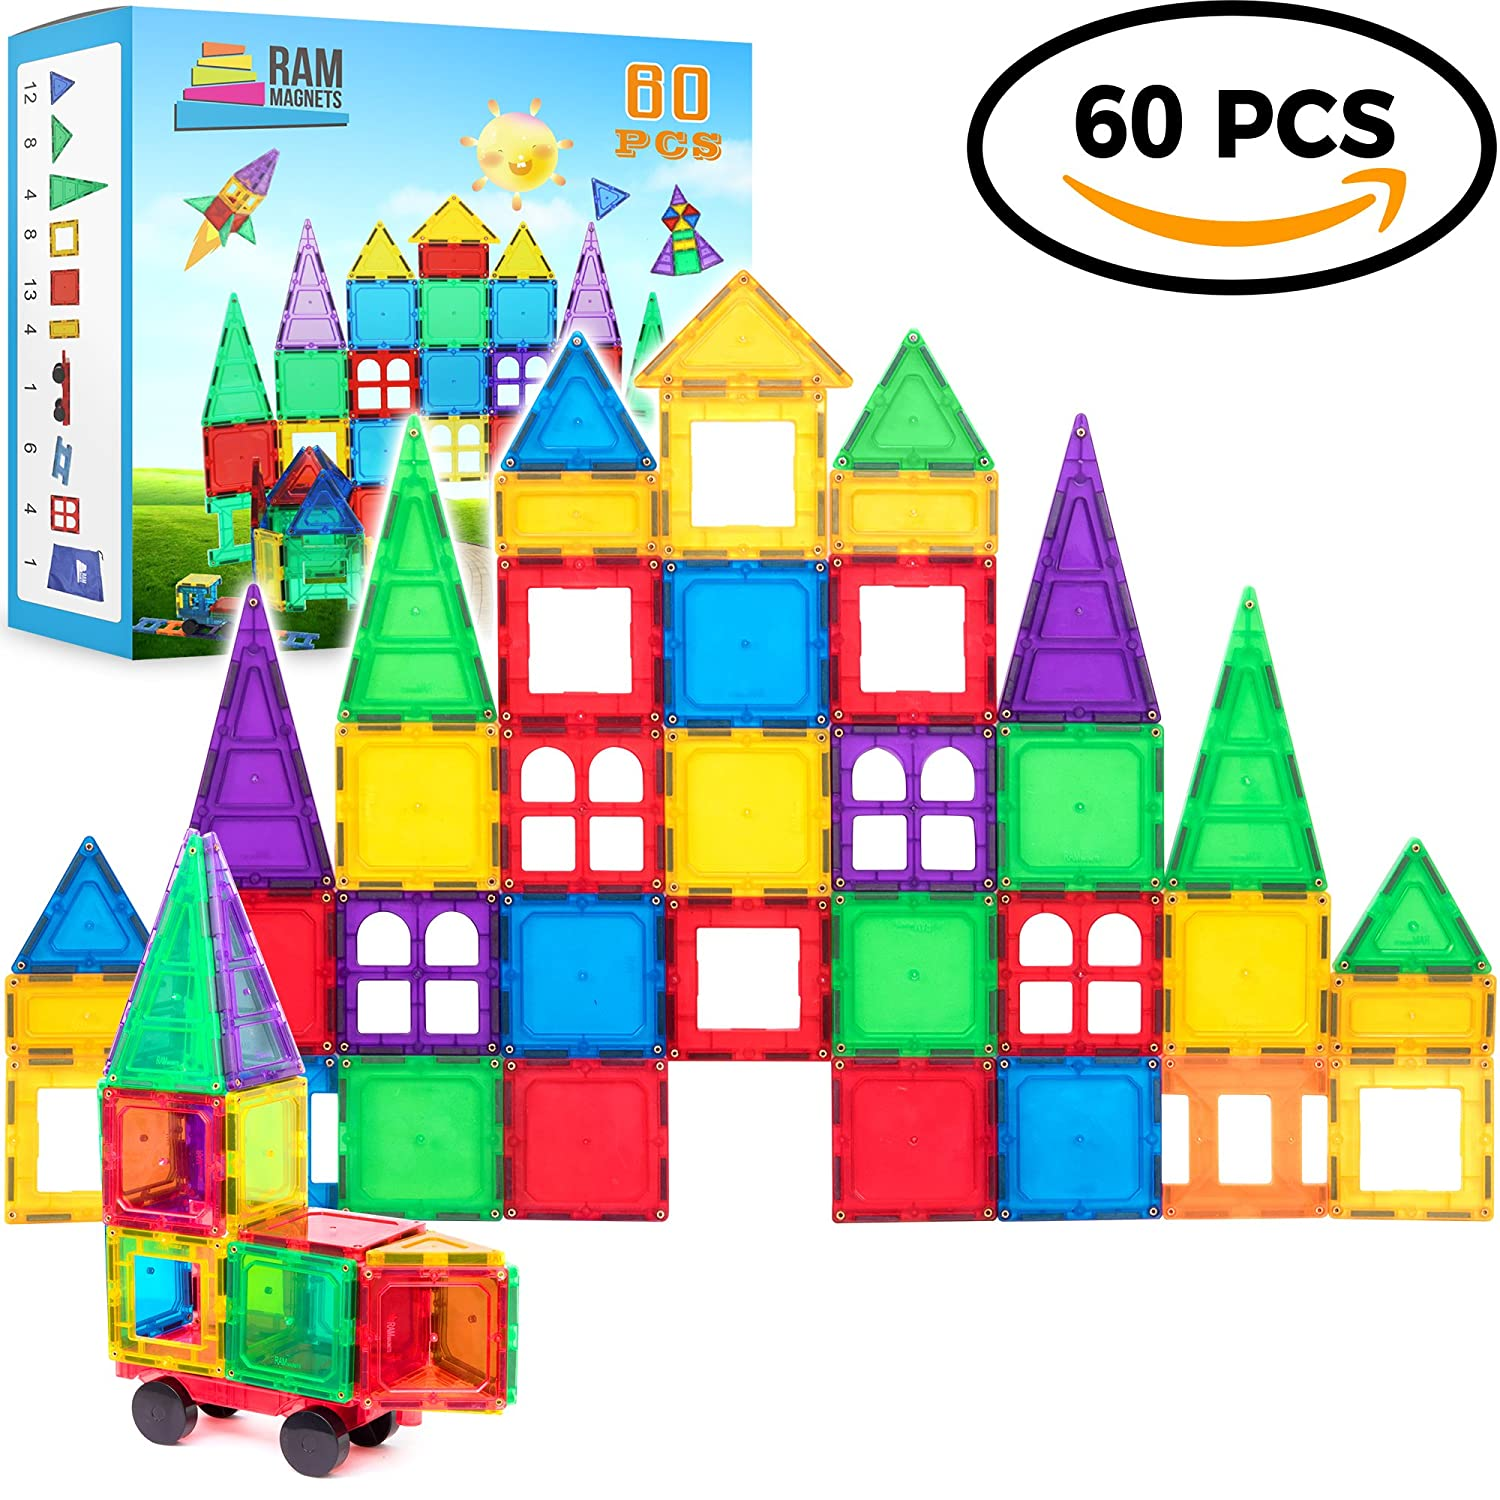 Magnetic Building Blocks 60 Piece Set, Strongest Shape Tiles, Toy Building Sets, Magnets for Kids, Suitable for Three Year Olds and Up, 3D & 2D Logical Reasoning Game, Educational Children's Block Toy Review